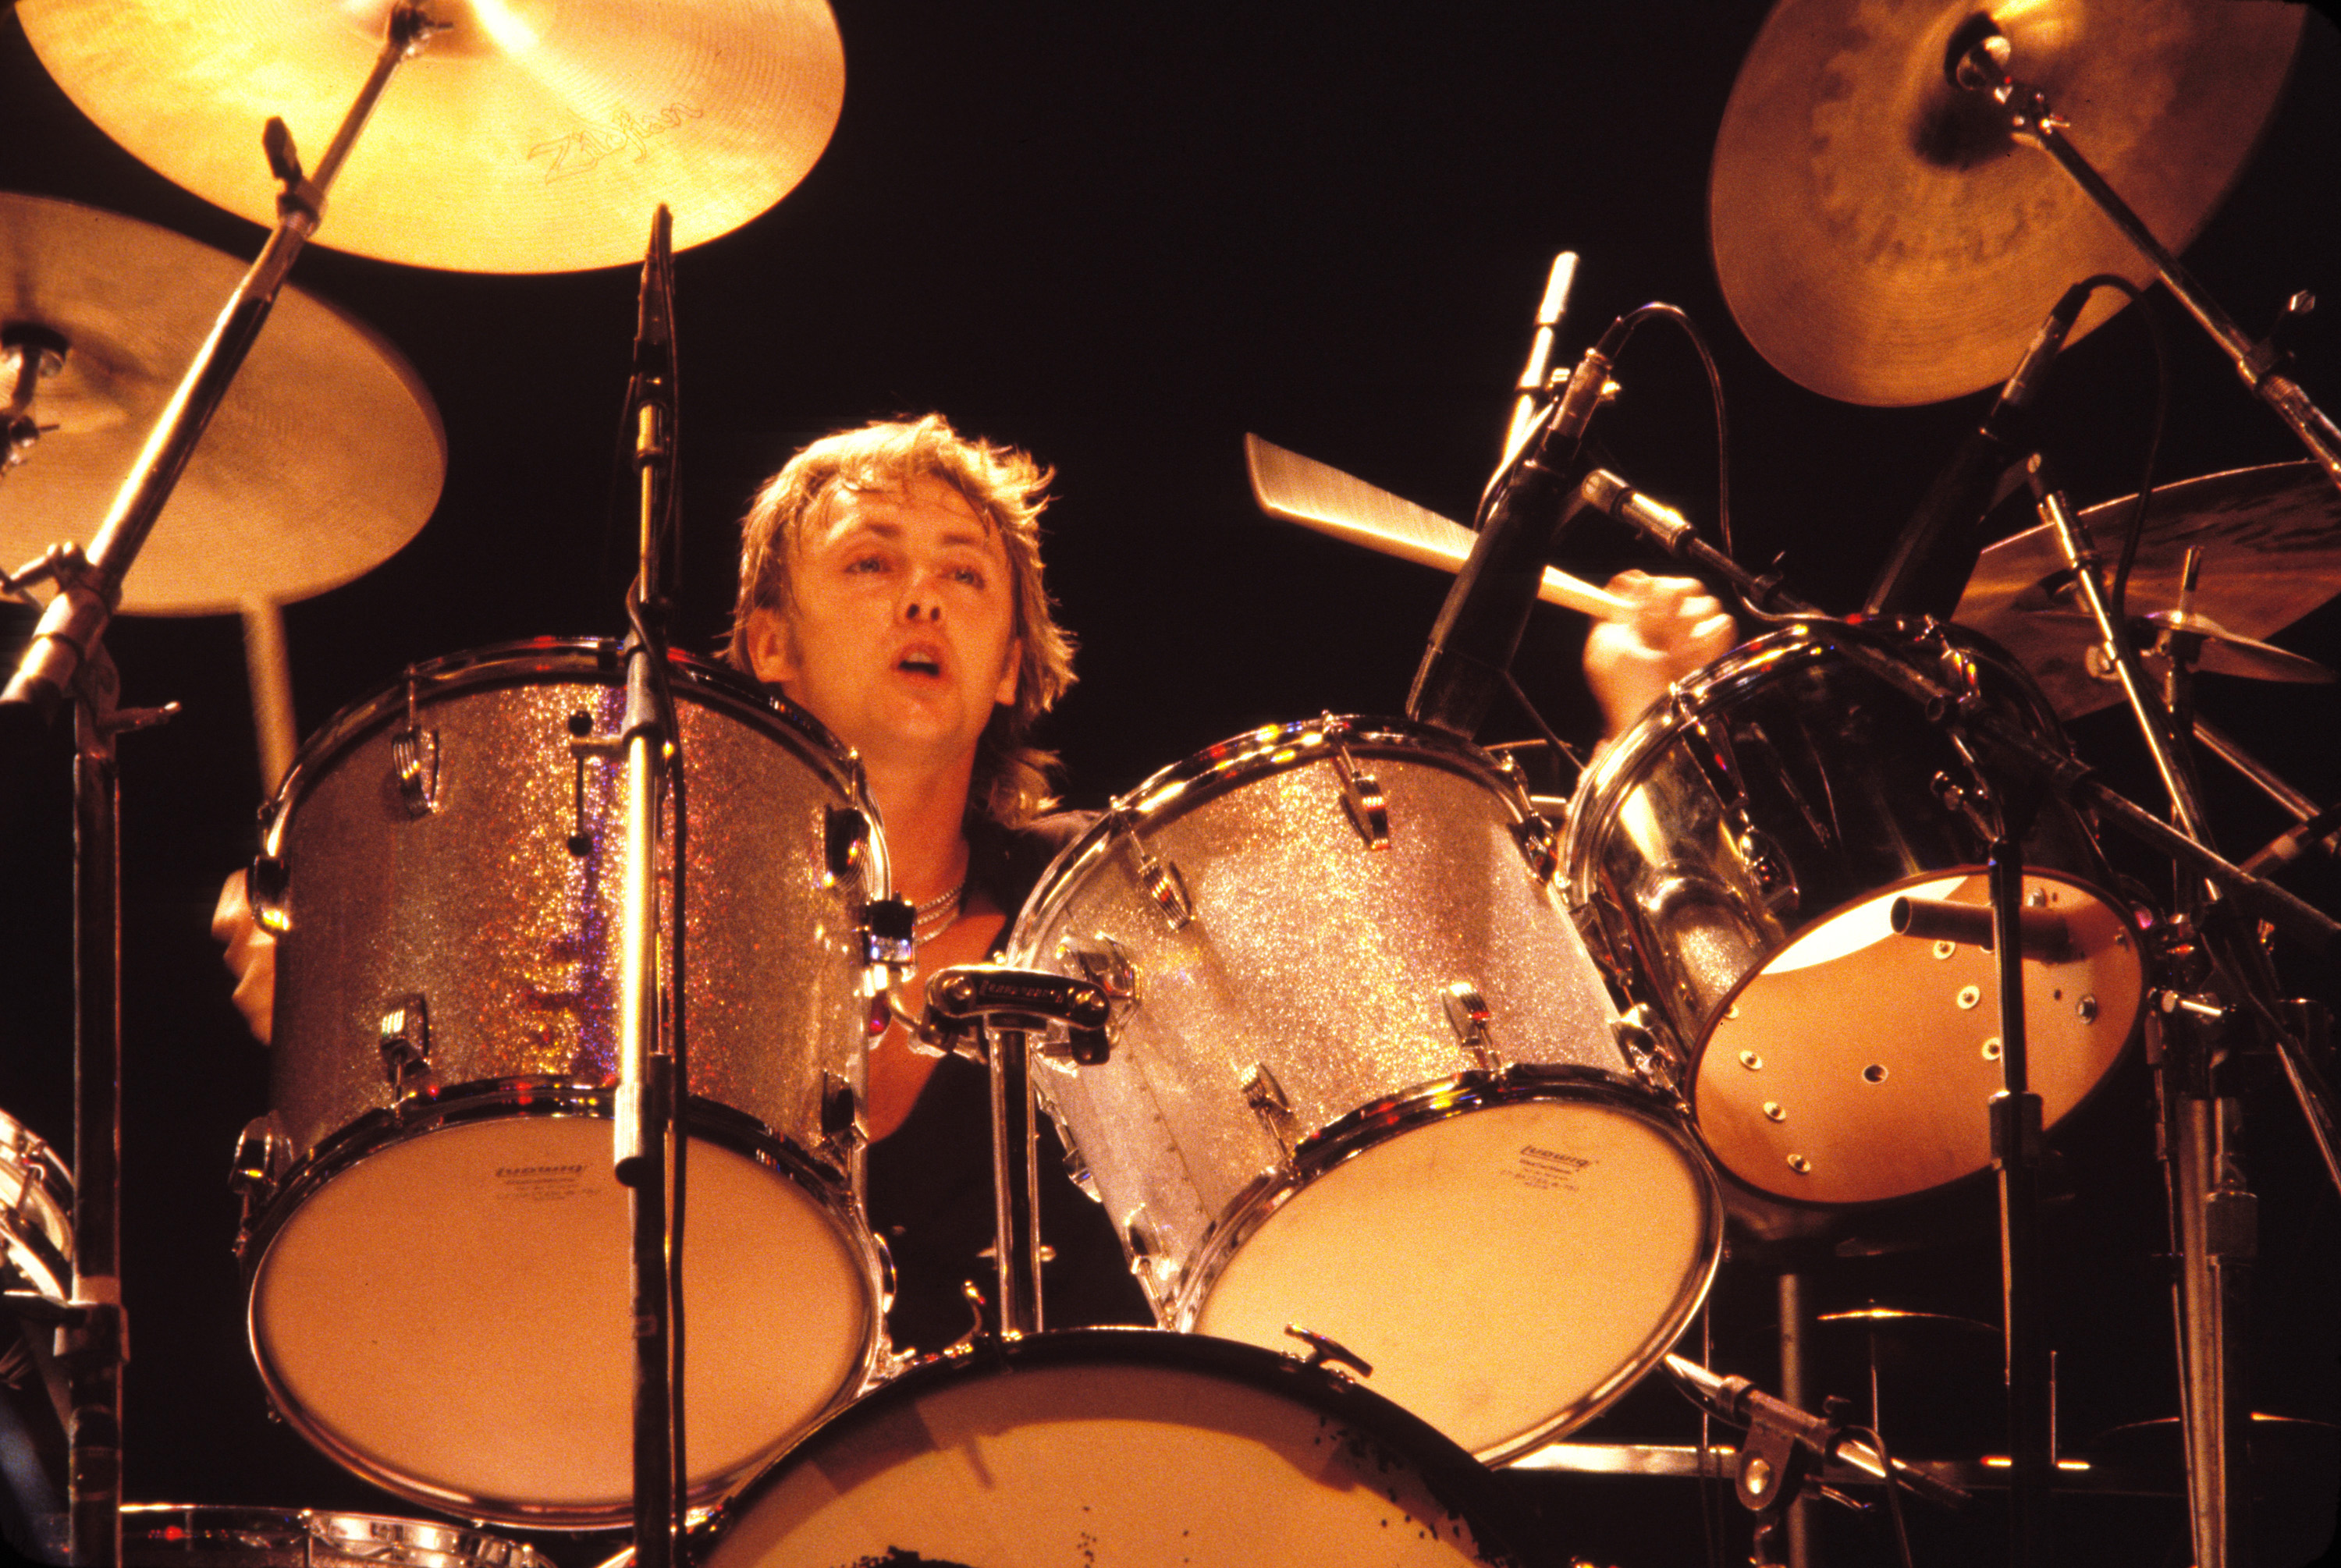 Roger Taylor of Queen on 'Jazz Tour 1980' (Photo by Steve Jennings/WireImage)